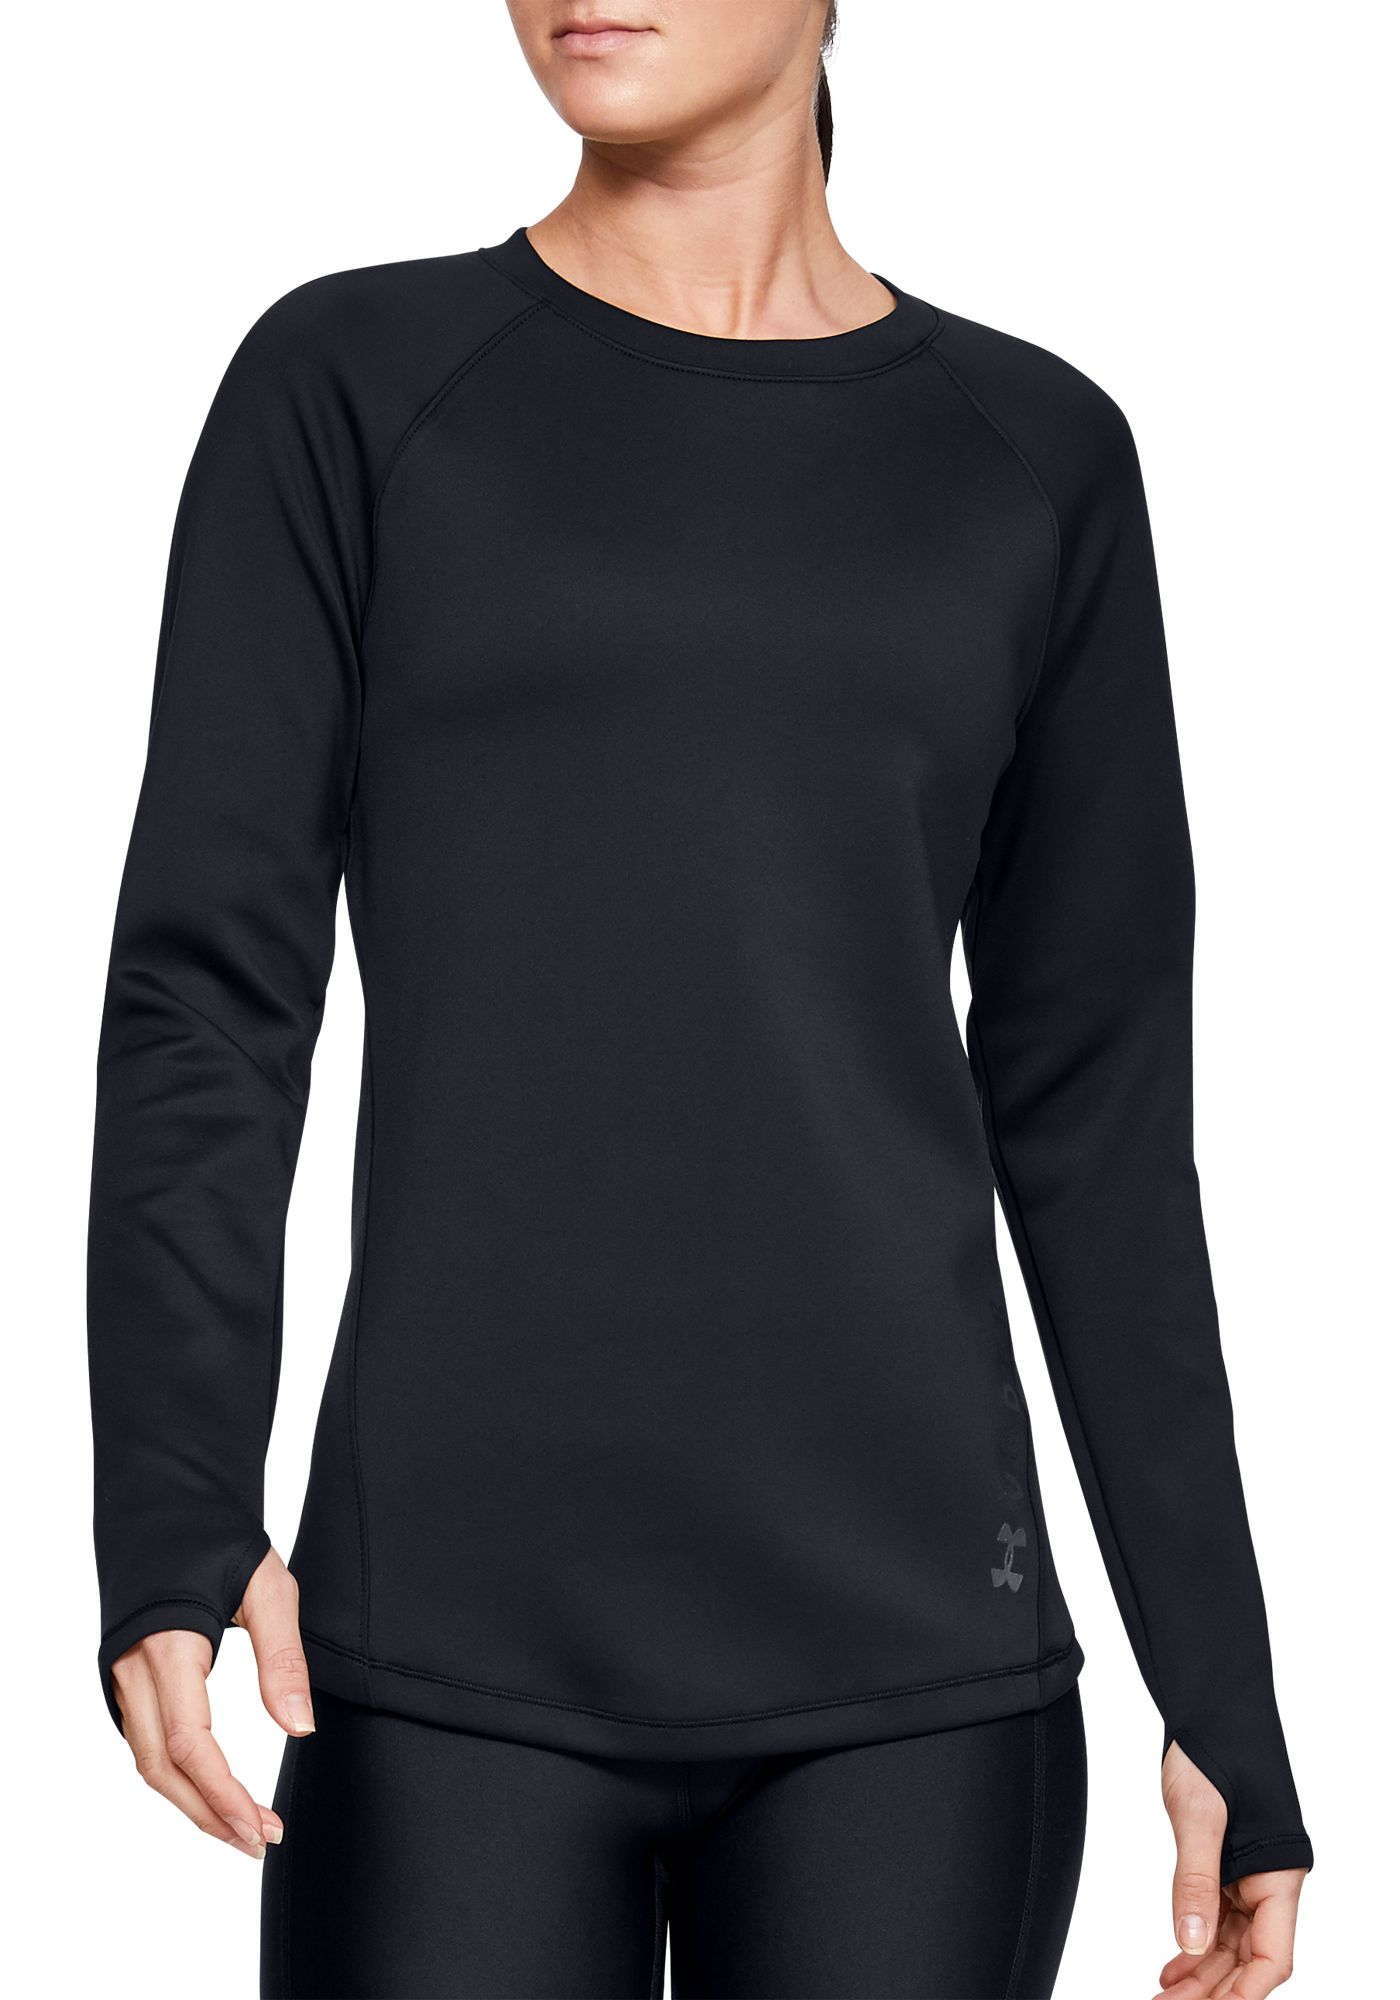 Under Armour Women's ColdGear Armour Long Sleeve Shirt